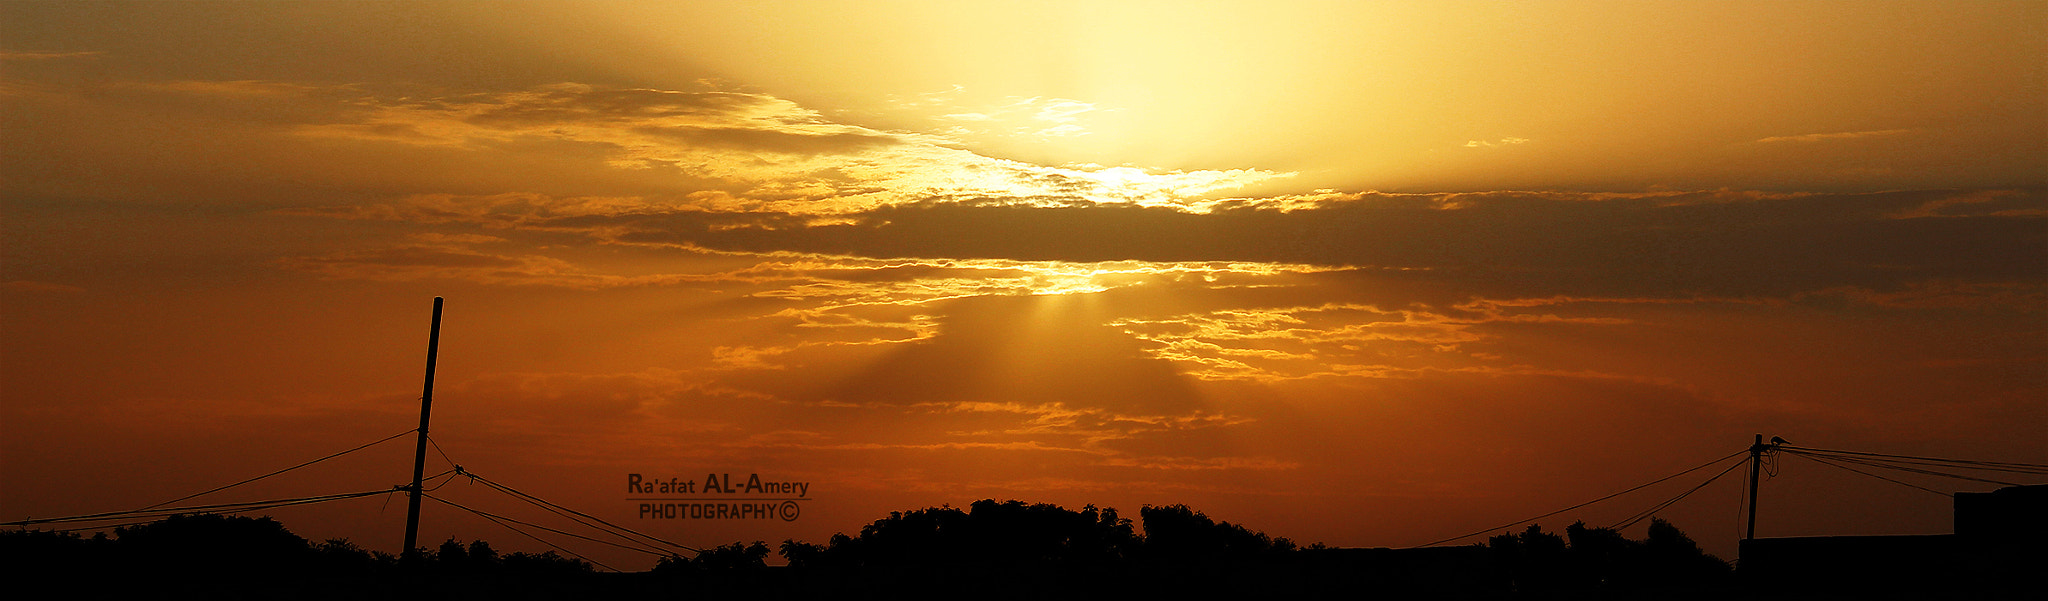 Photograph Panoramic sunset by Ra'afat Al-Amery on 500px